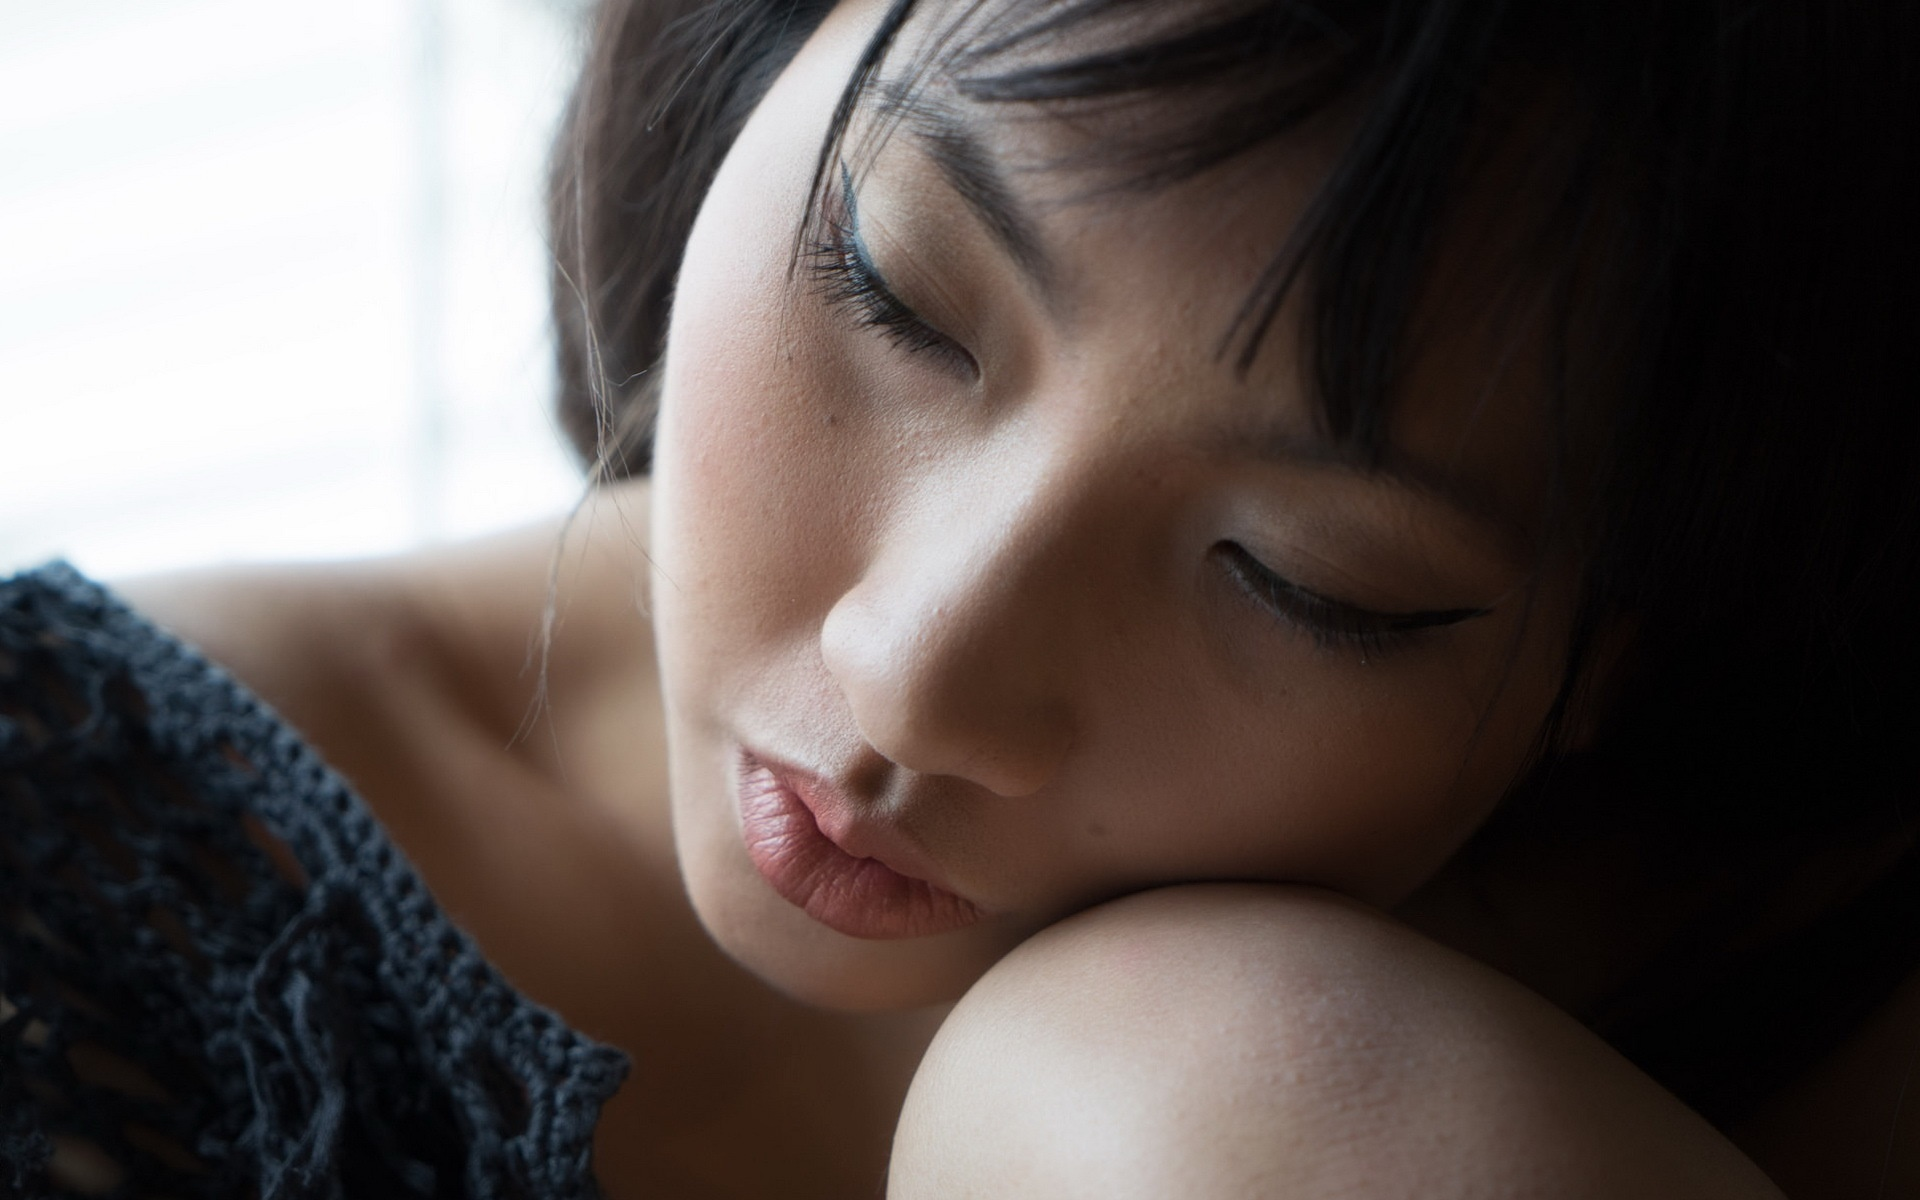 Asian girl sleeping 1920x1200 wallpaper